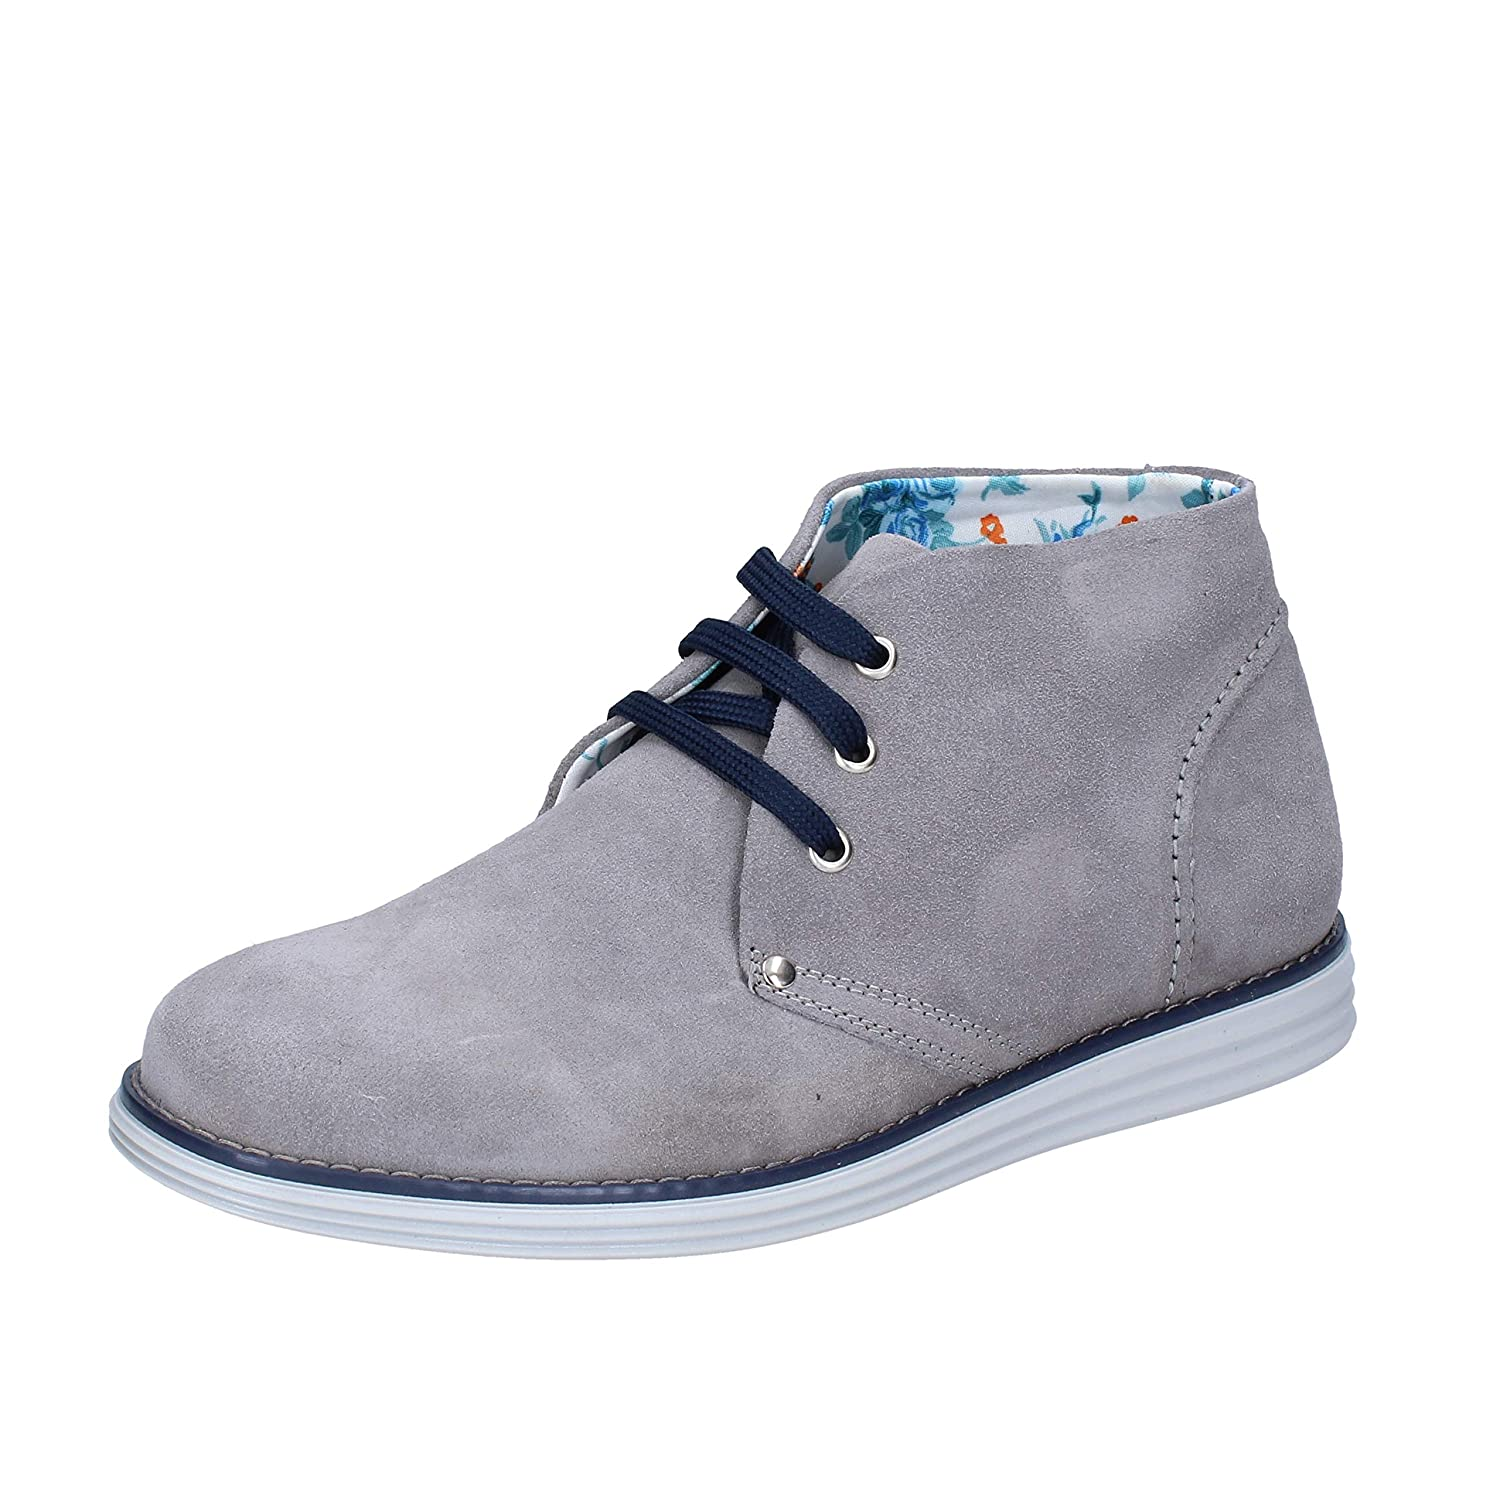 - AT. P. CO. Boots Womens Suede Grey